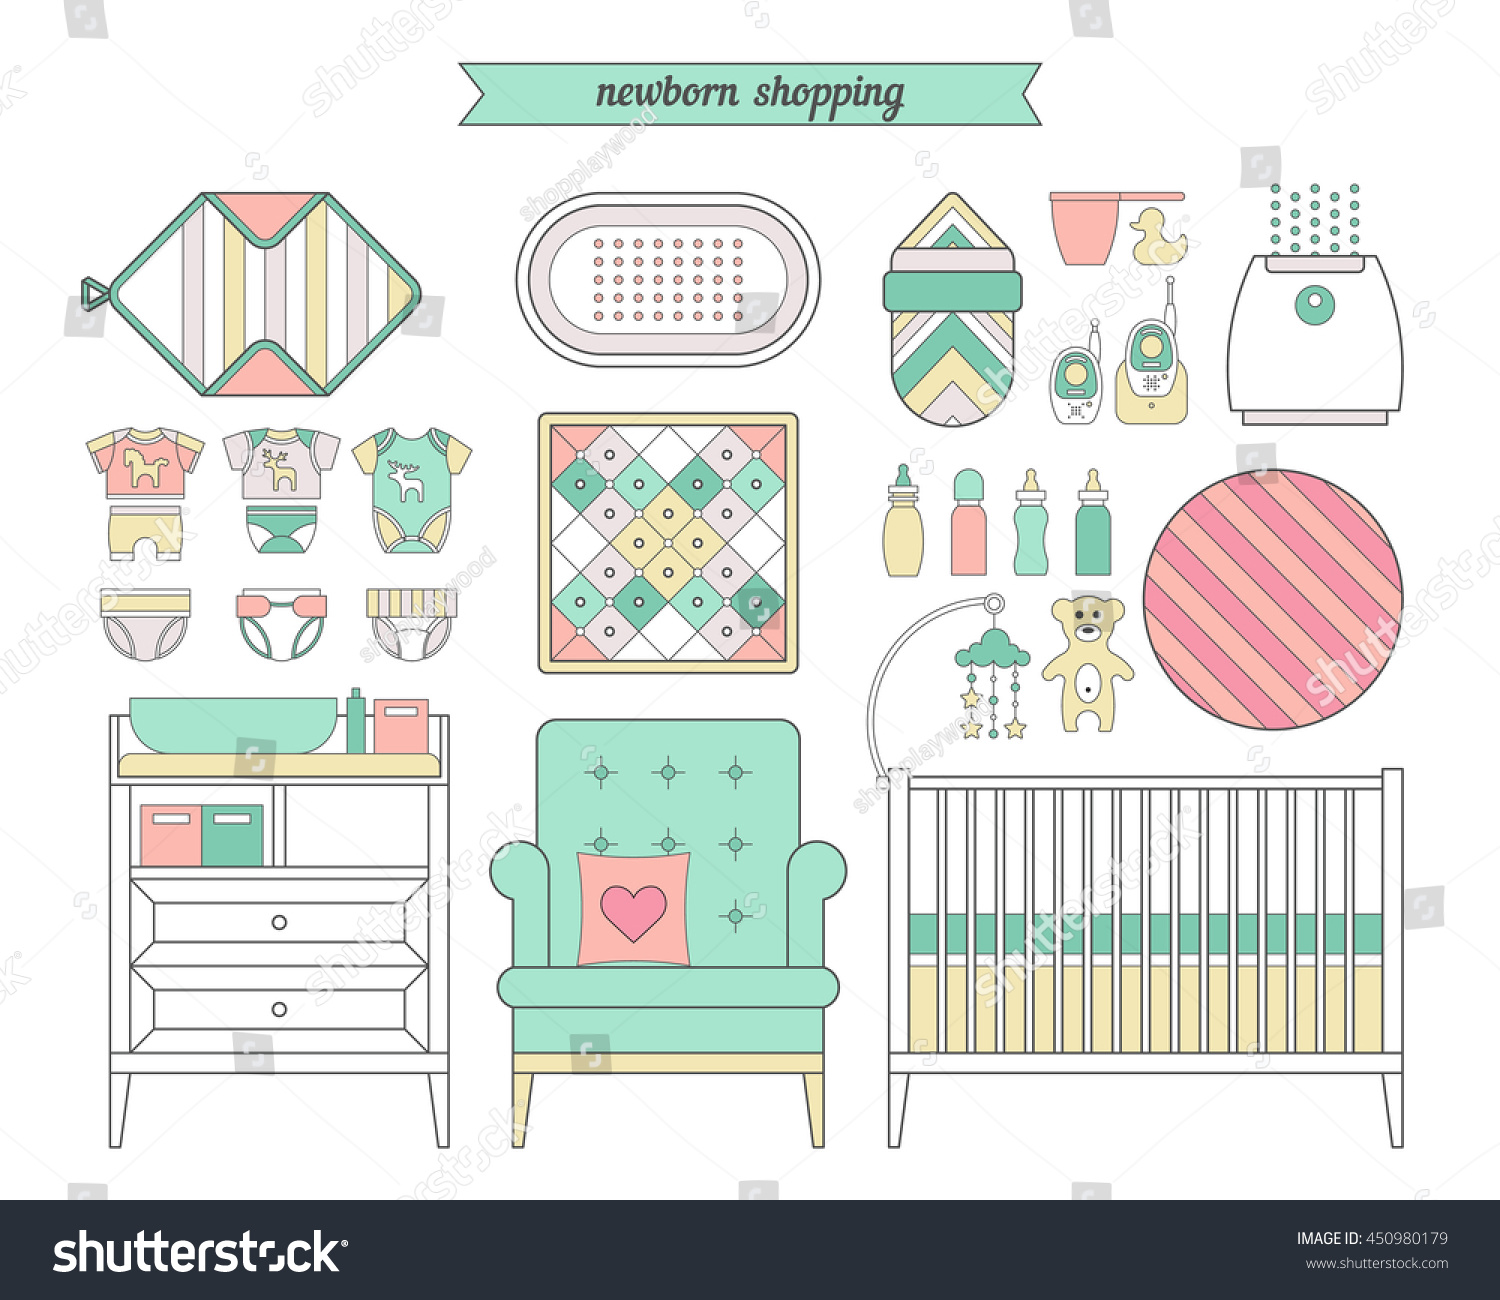 862830c95 Newborn Essentials Shopping List Vector Baby Stock Vector (Royalty ...